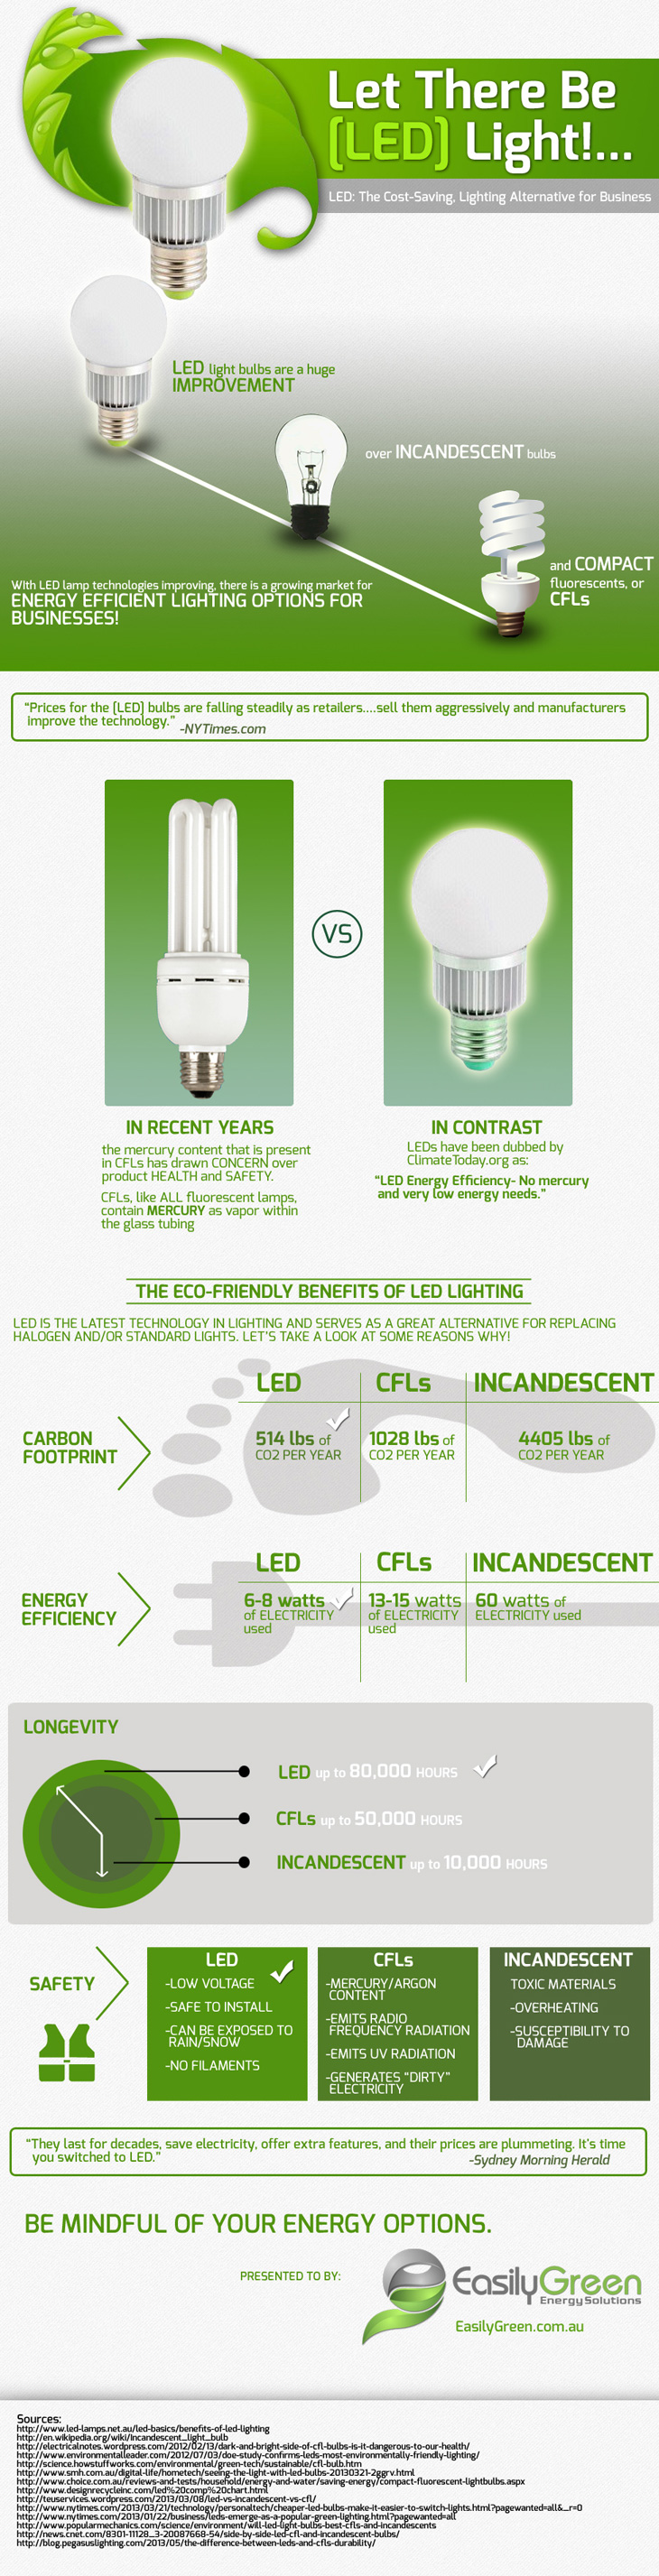 LED-Cost-Saving-Lighting-for-Business